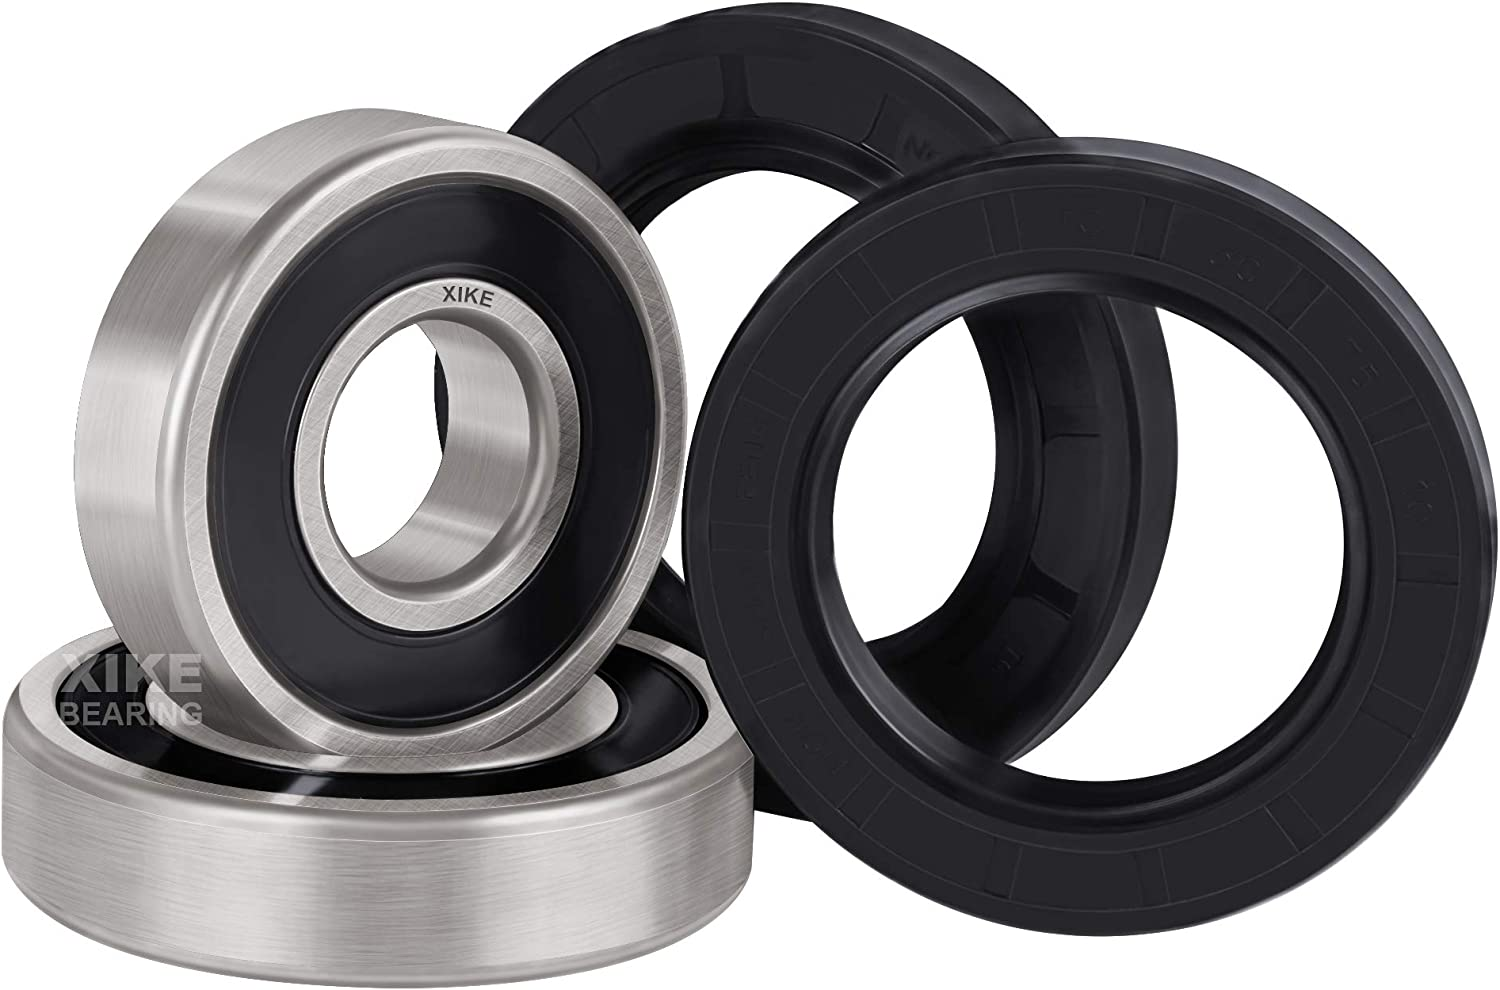 Front Load Washer Tub Bearing & Seal Kit W10772619, W10290562 and W10283358, Replacement for Whirlpool and Maytag Etc.